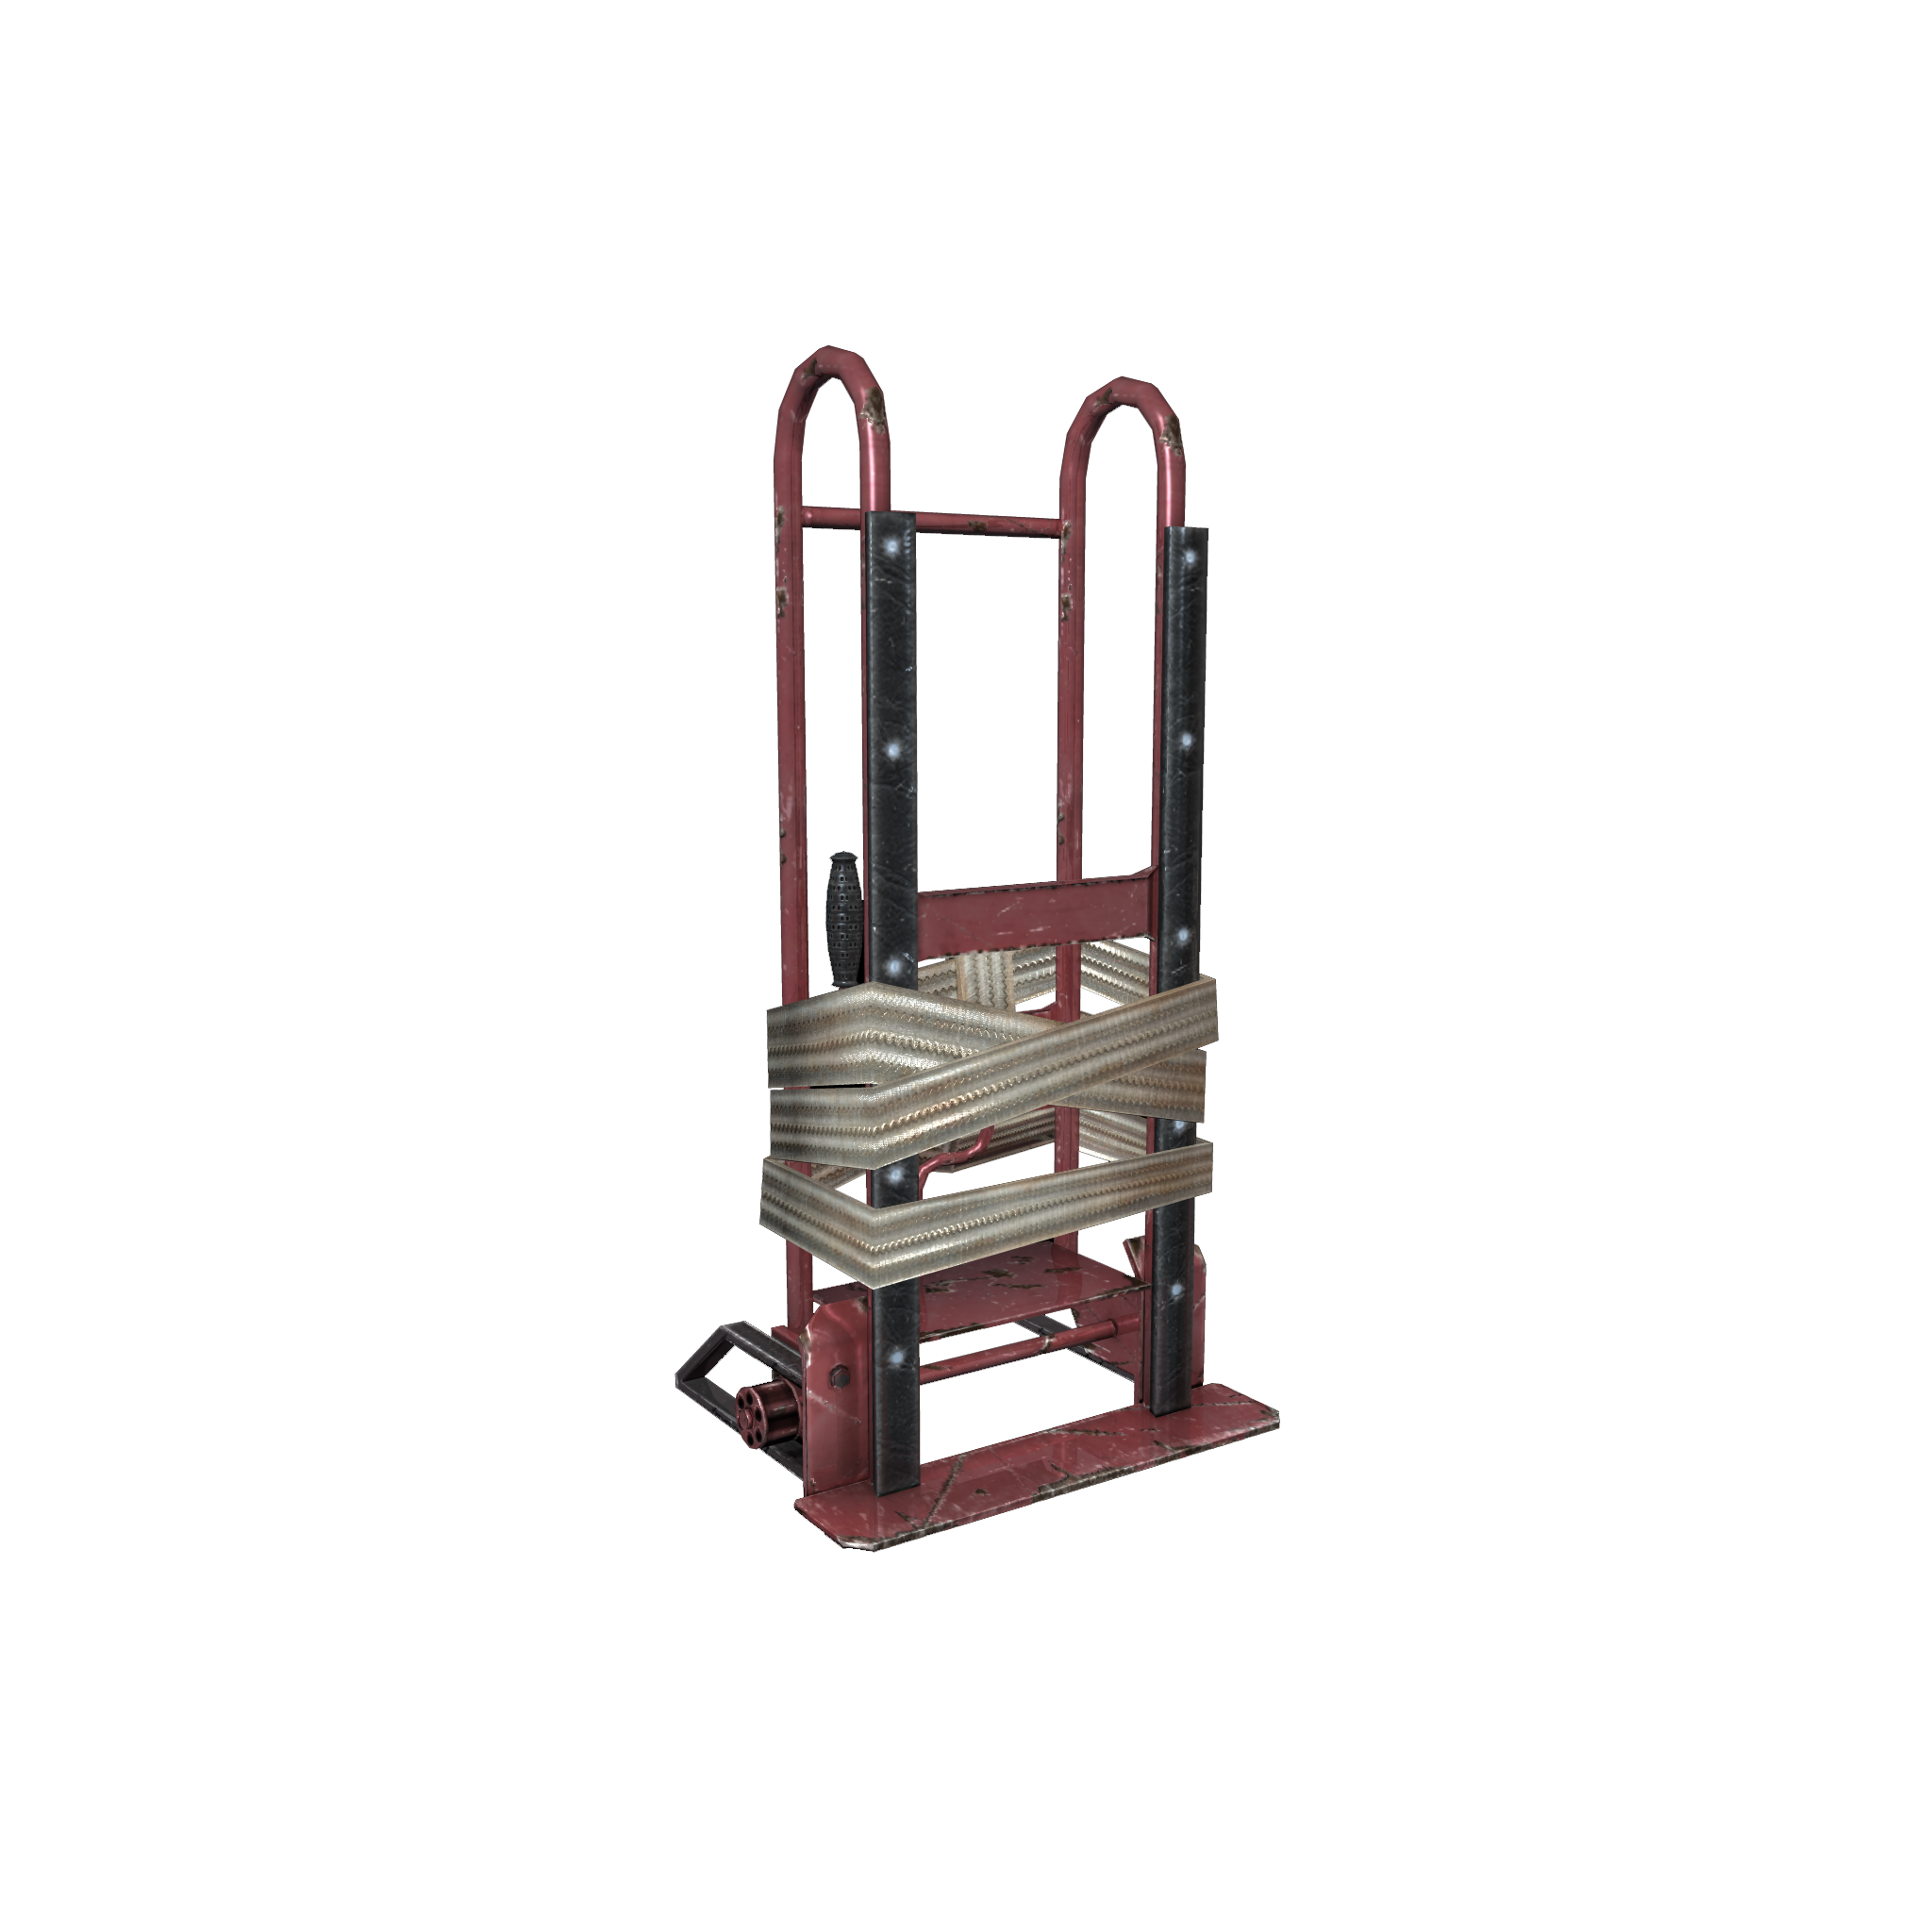 Superb Zombies Release Countdown And Dlc News Page 13 General Beatyapartments Chair Design Images Beatyapartmentscom